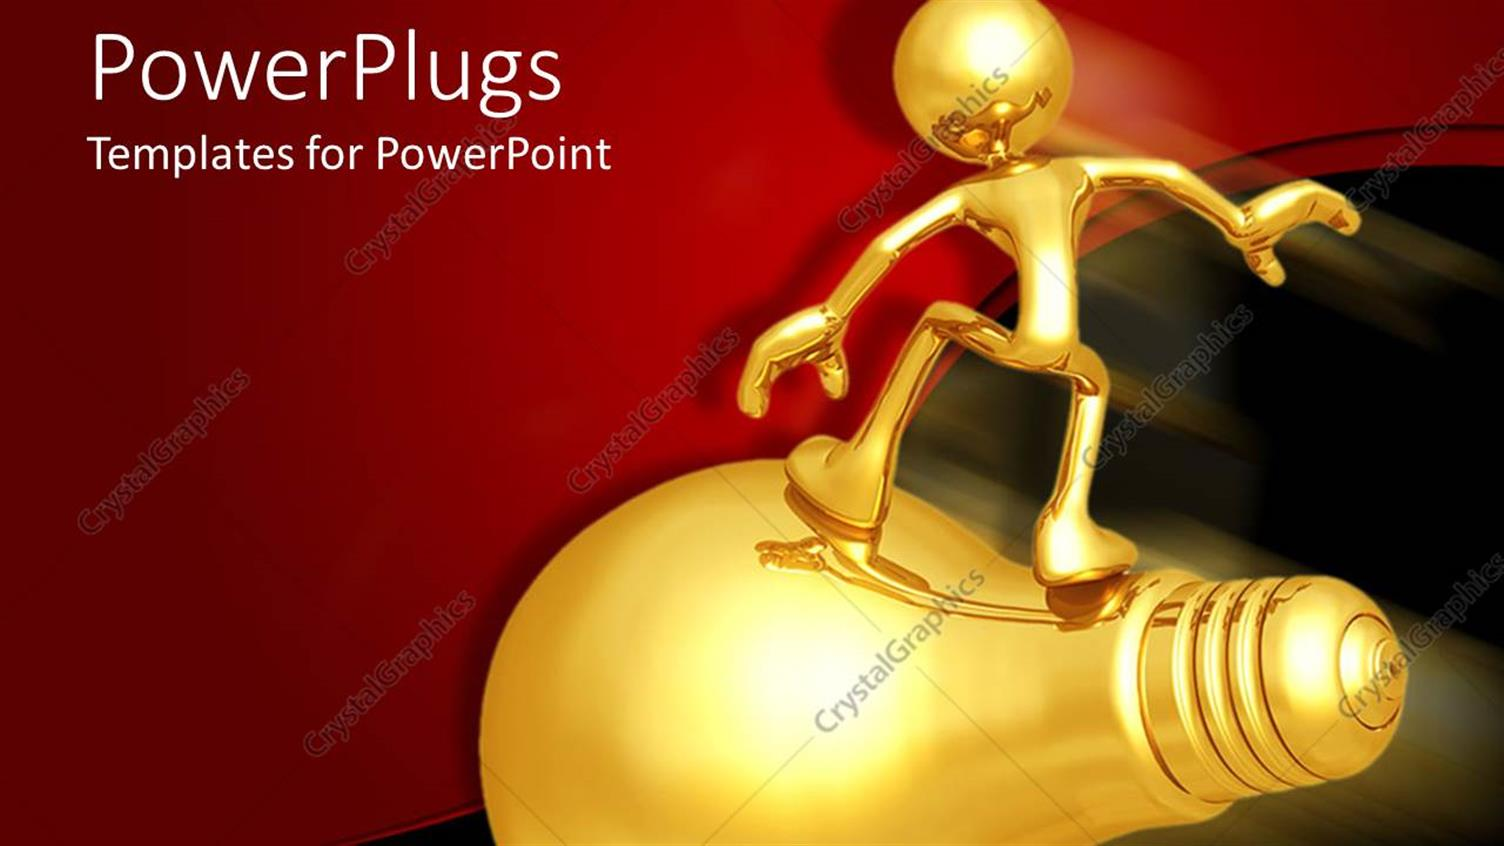 PowerPoint Template Displaying Gold Human Figure Standing on a Fast Moving Golden Bulb